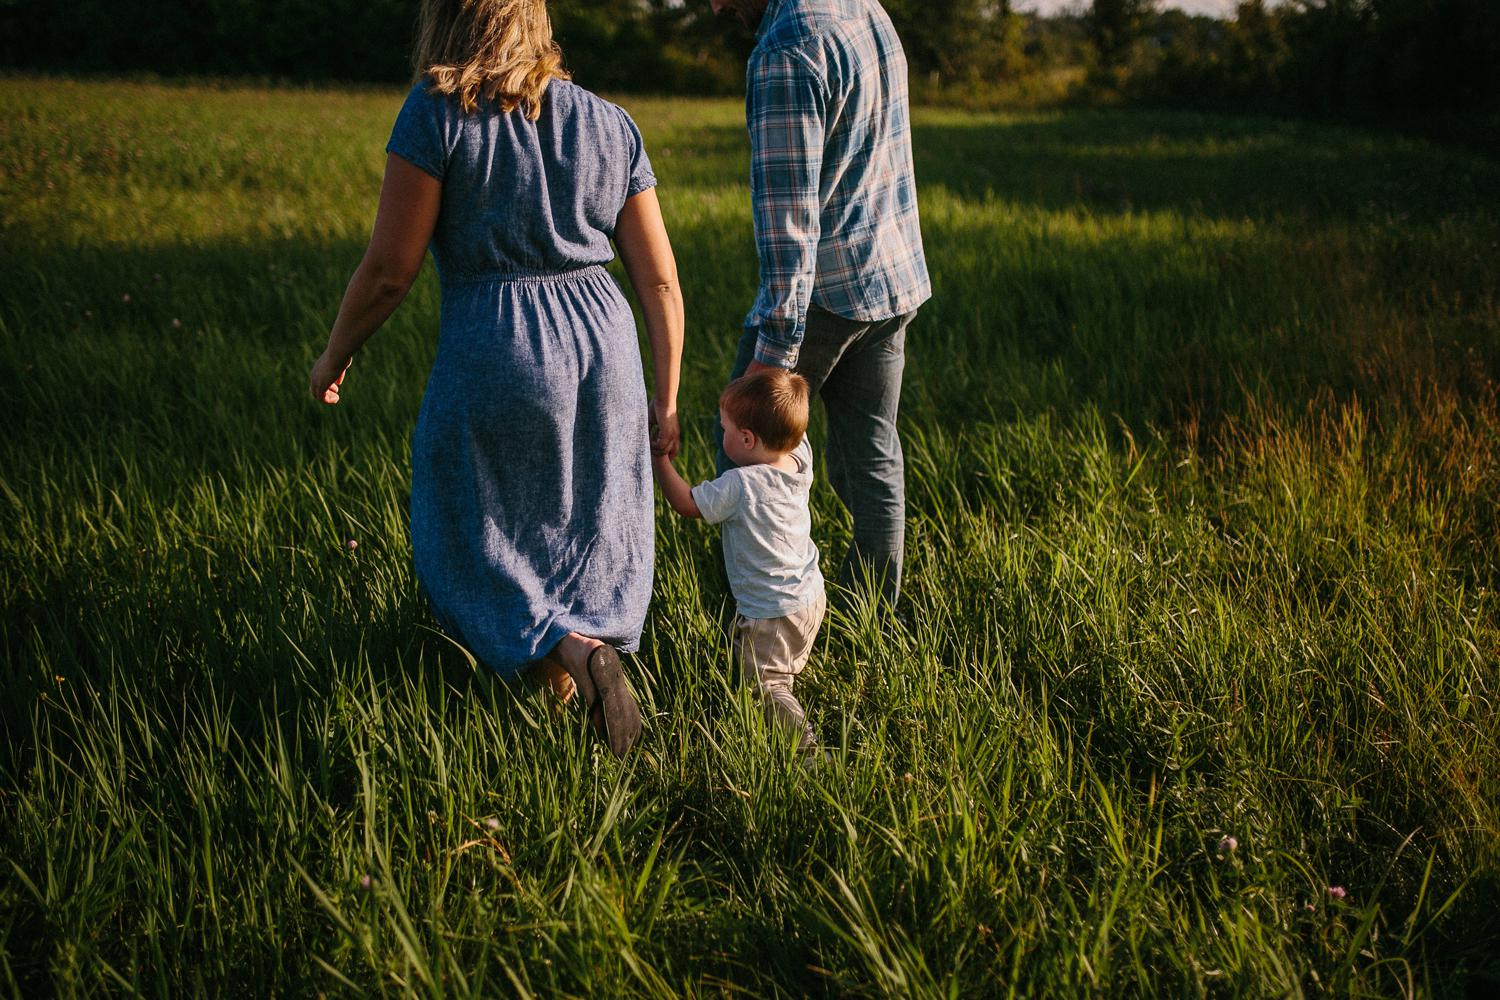 perth lanark county family outdoor photographer - kerry ford photography-061.jpg